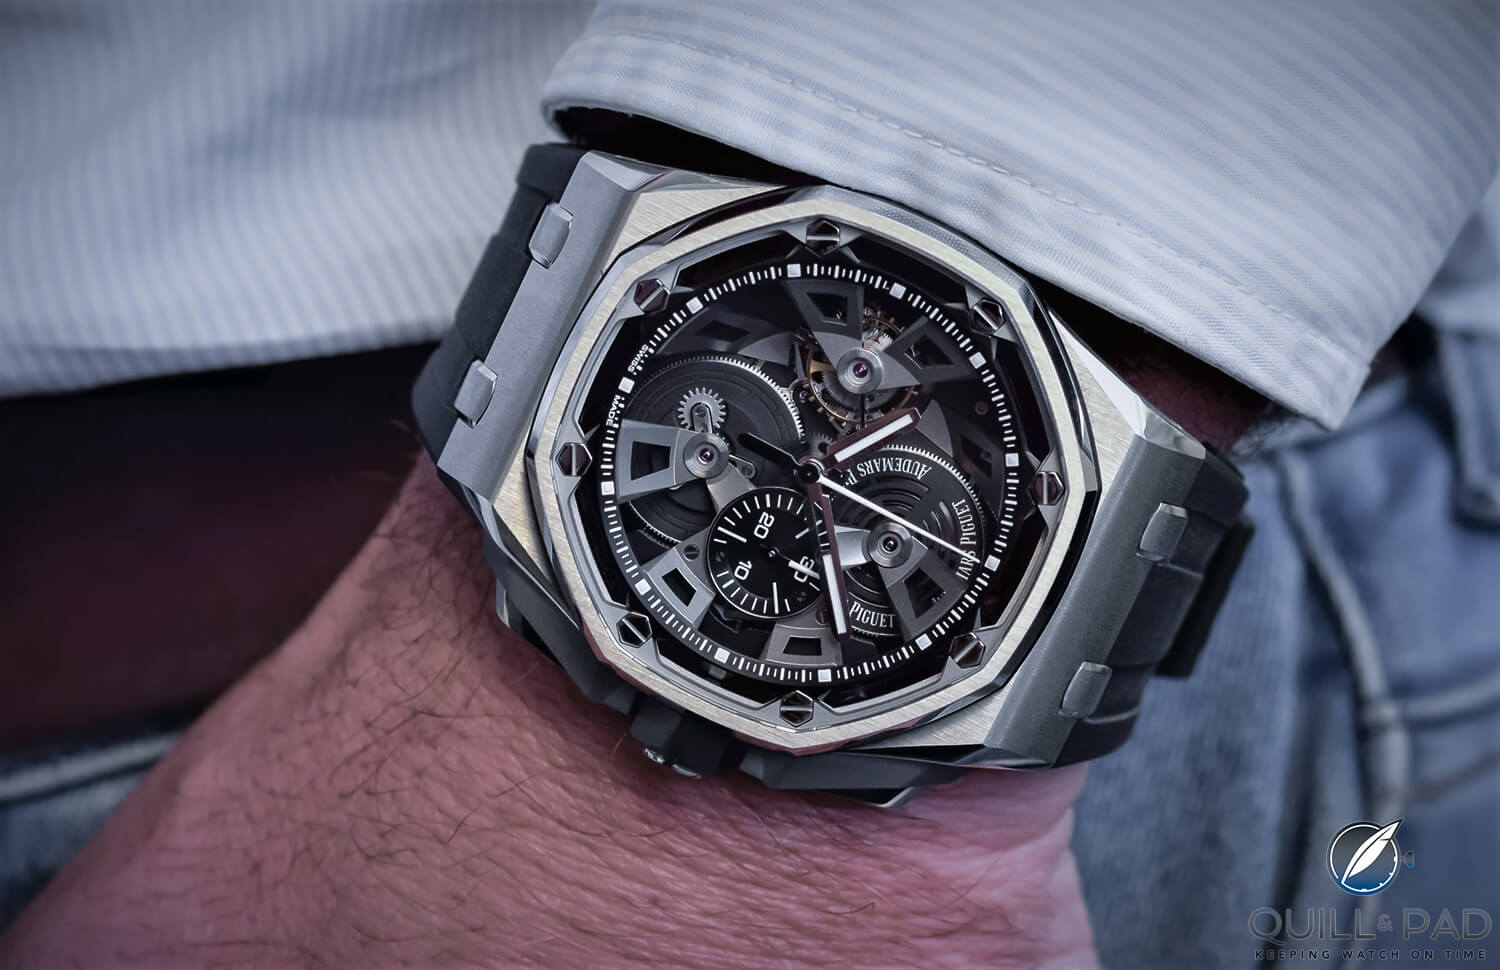 Audemars Piguet Royal Oak Offshore Chronograph Tourbillon, celebrating the Offshore's 25th Anniversary